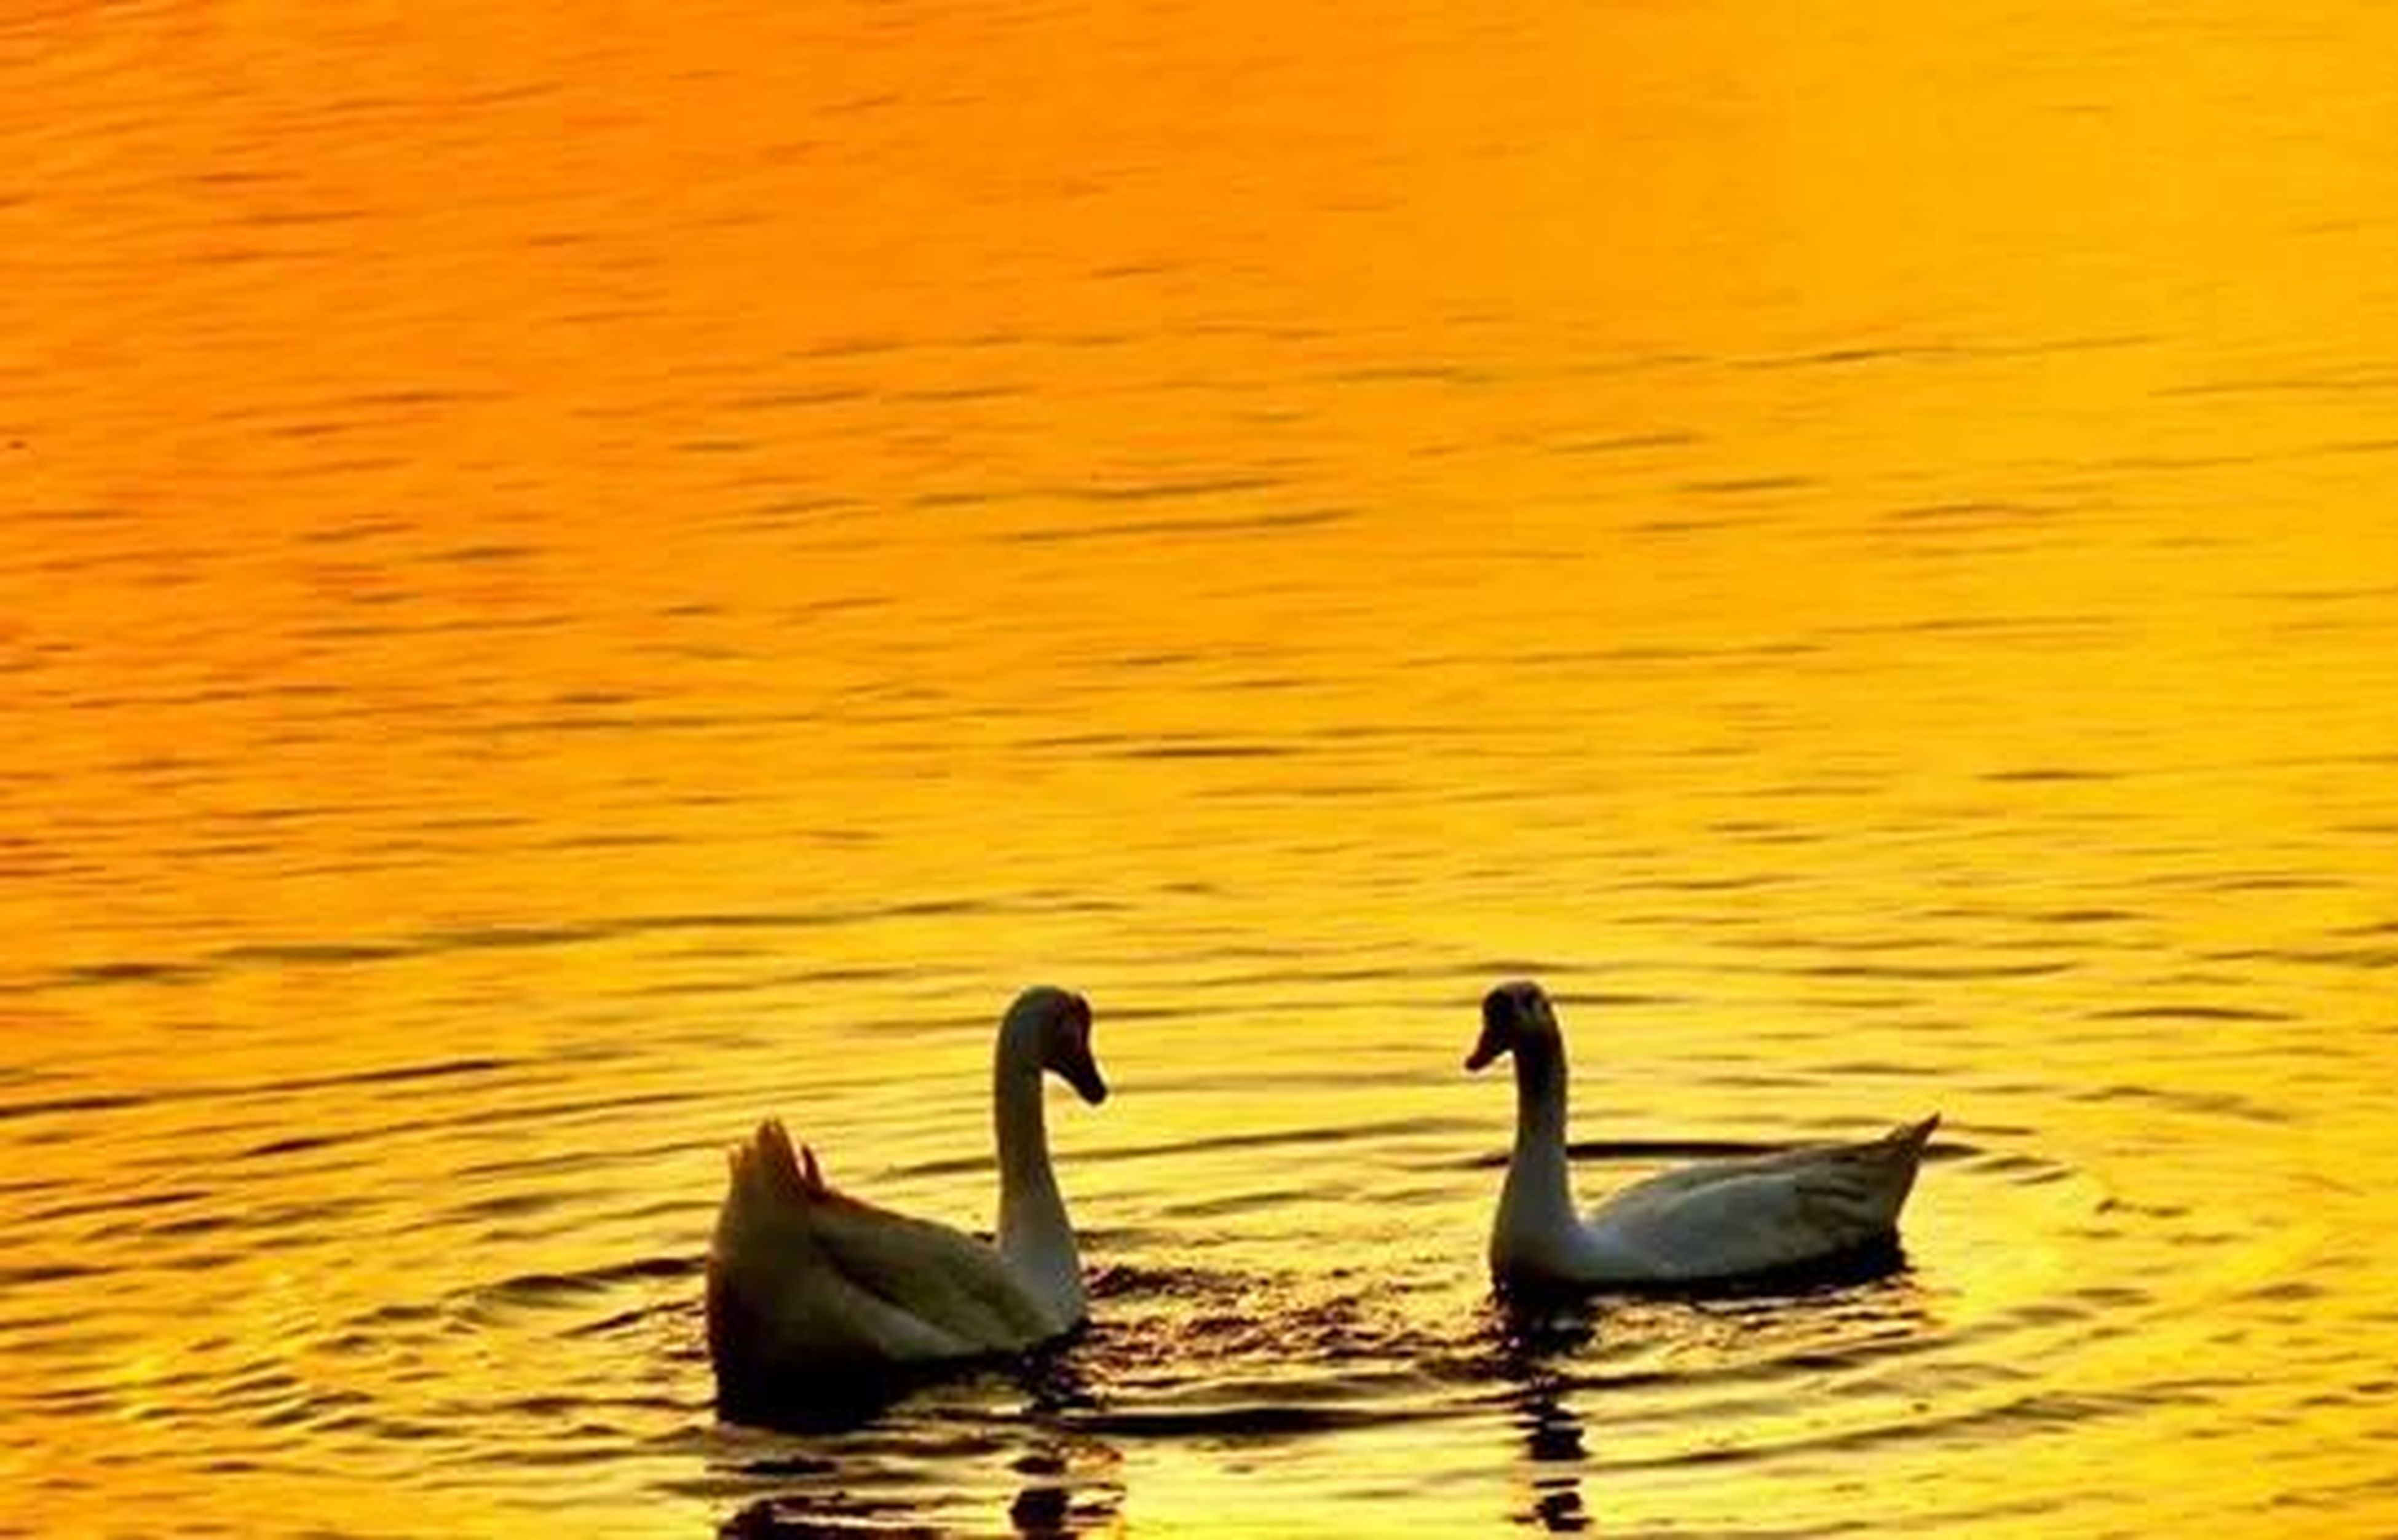 bird, animal themes, animals in the wild, wildlife, water, swimming, lake, waterfront, rippled, swan, duck, reflection, nature, sunset, beauty in nature, water bird, floating on water, outdoors, tranquility, no people